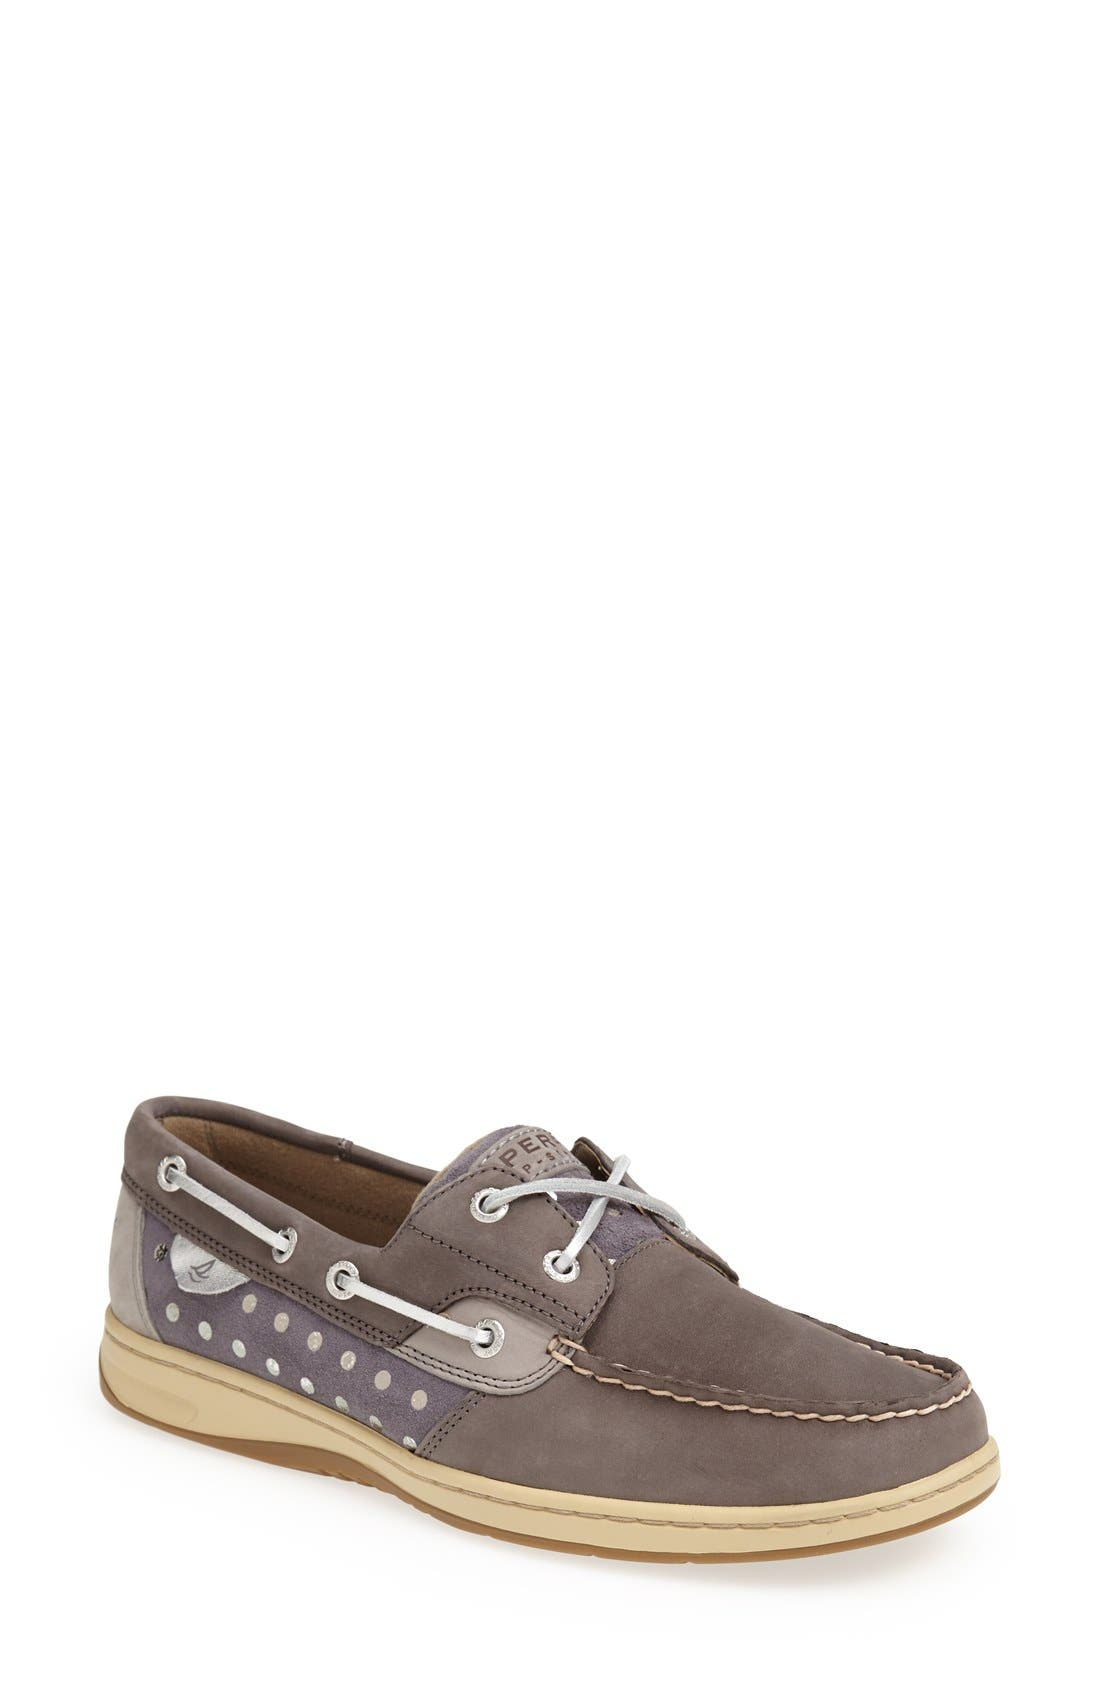 Main Image - Sperry Top-Sider® 'Bluefish' Boat Shoe (Women)